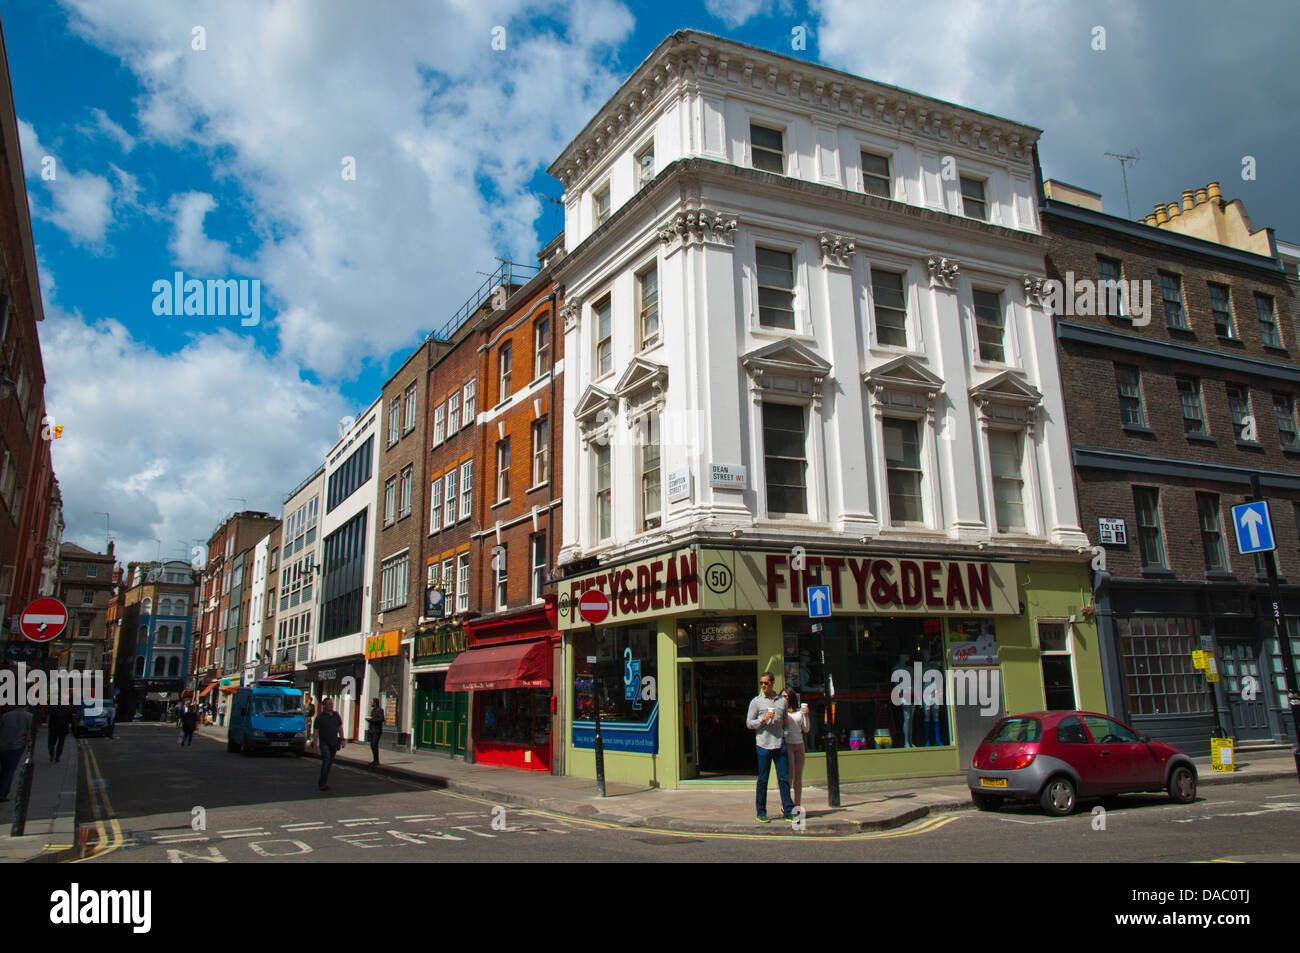 Corner of Old Compton Street and Dean street Soho district central London England Britain UK Europe - Stock Image